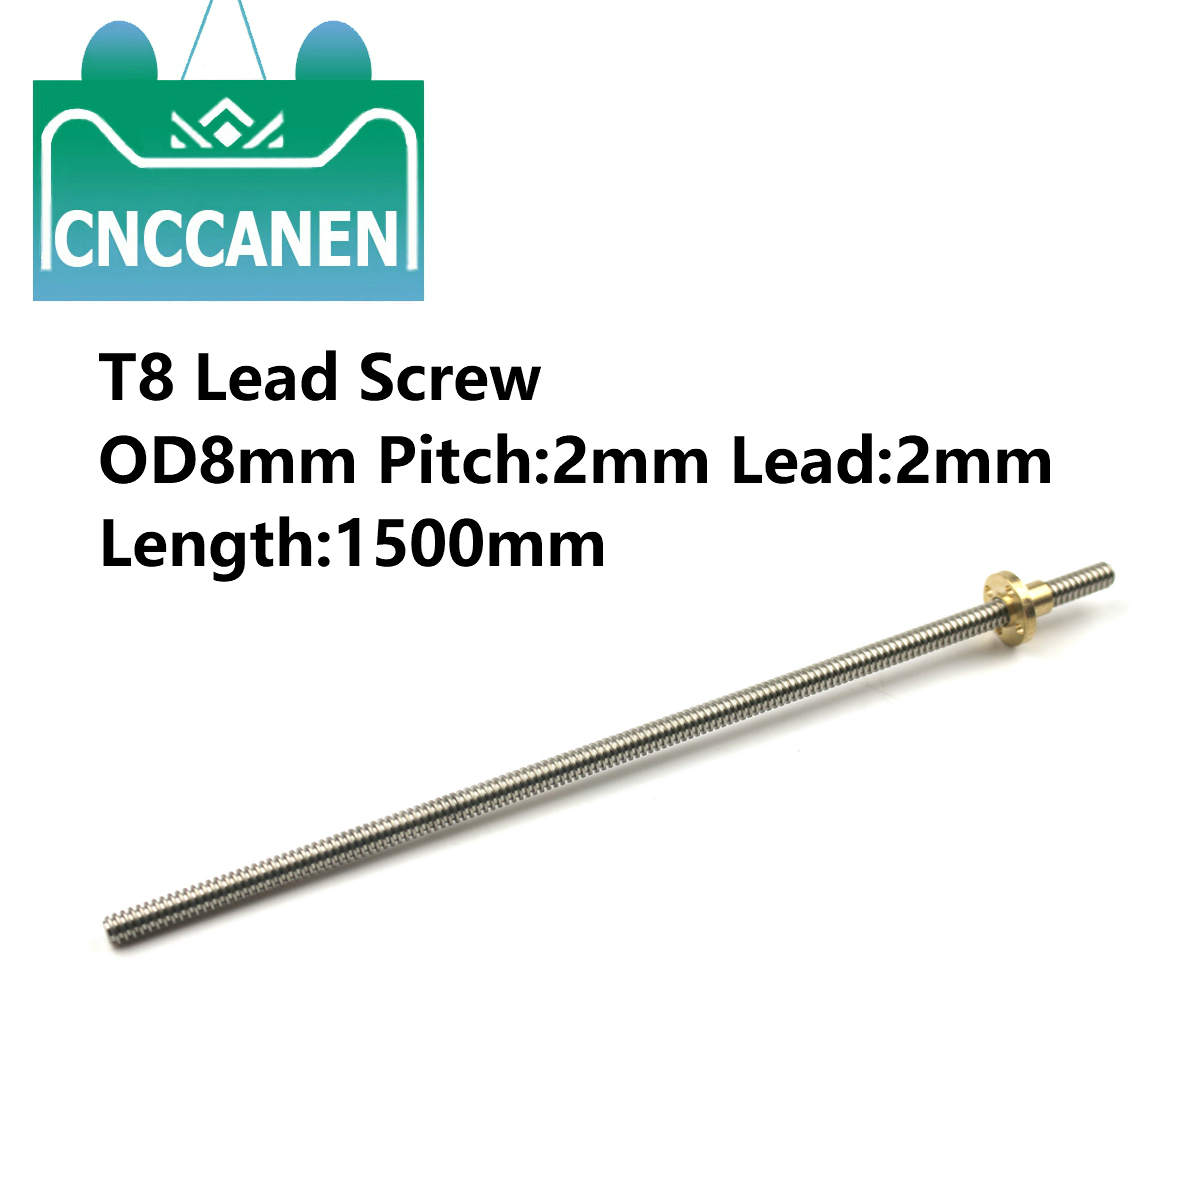 1Piece T8 Lead Screw Rod OD8mm Pitch 2mm Lead 2mm 1500mm With Brass Nut For CNC 3D Printer